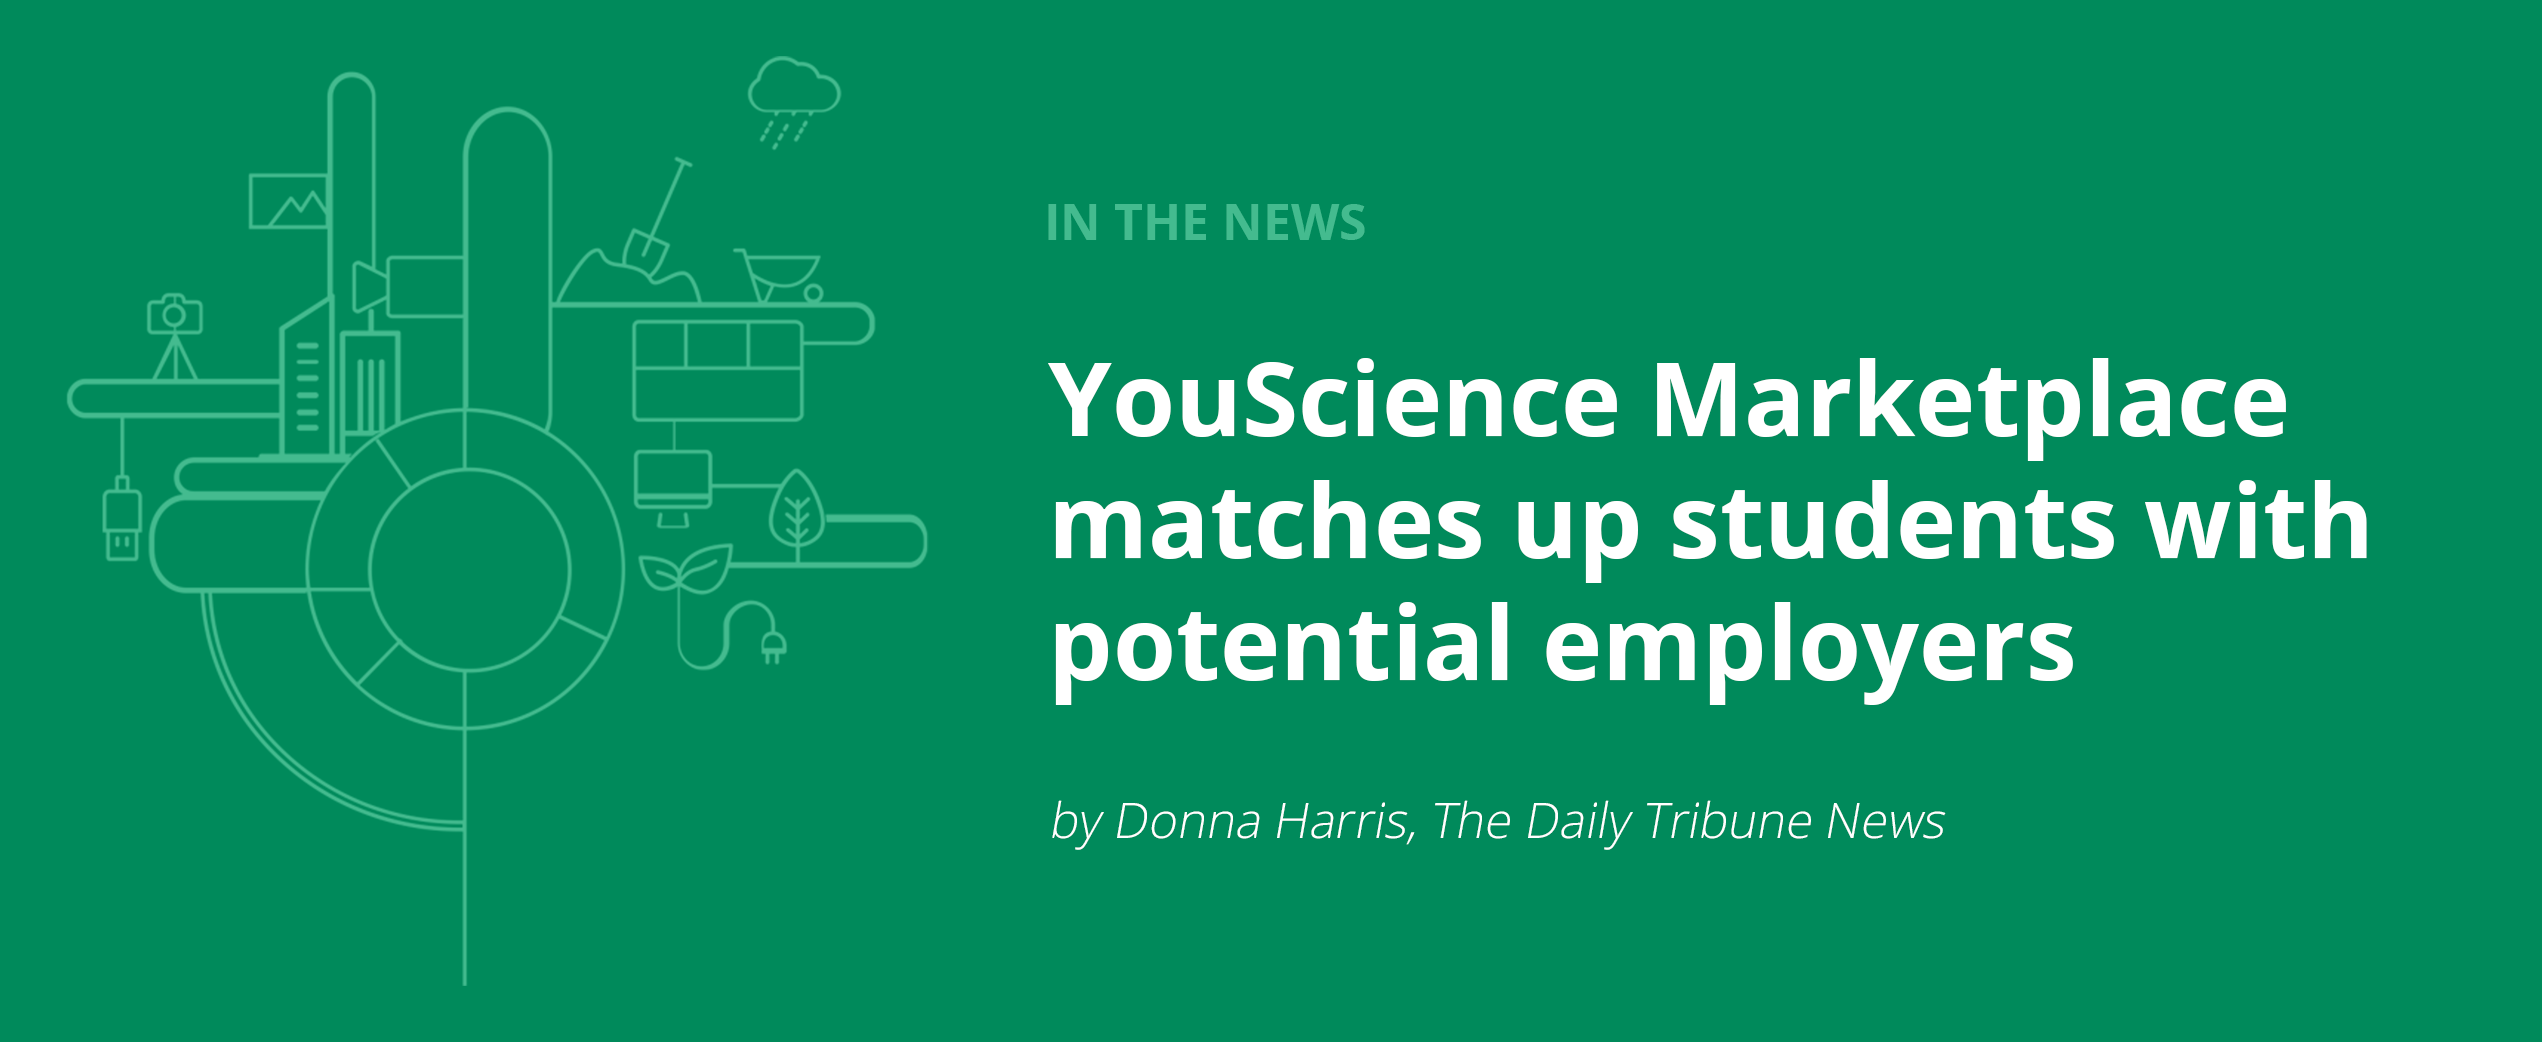 YouScience Marketplace matches up students with potential employers